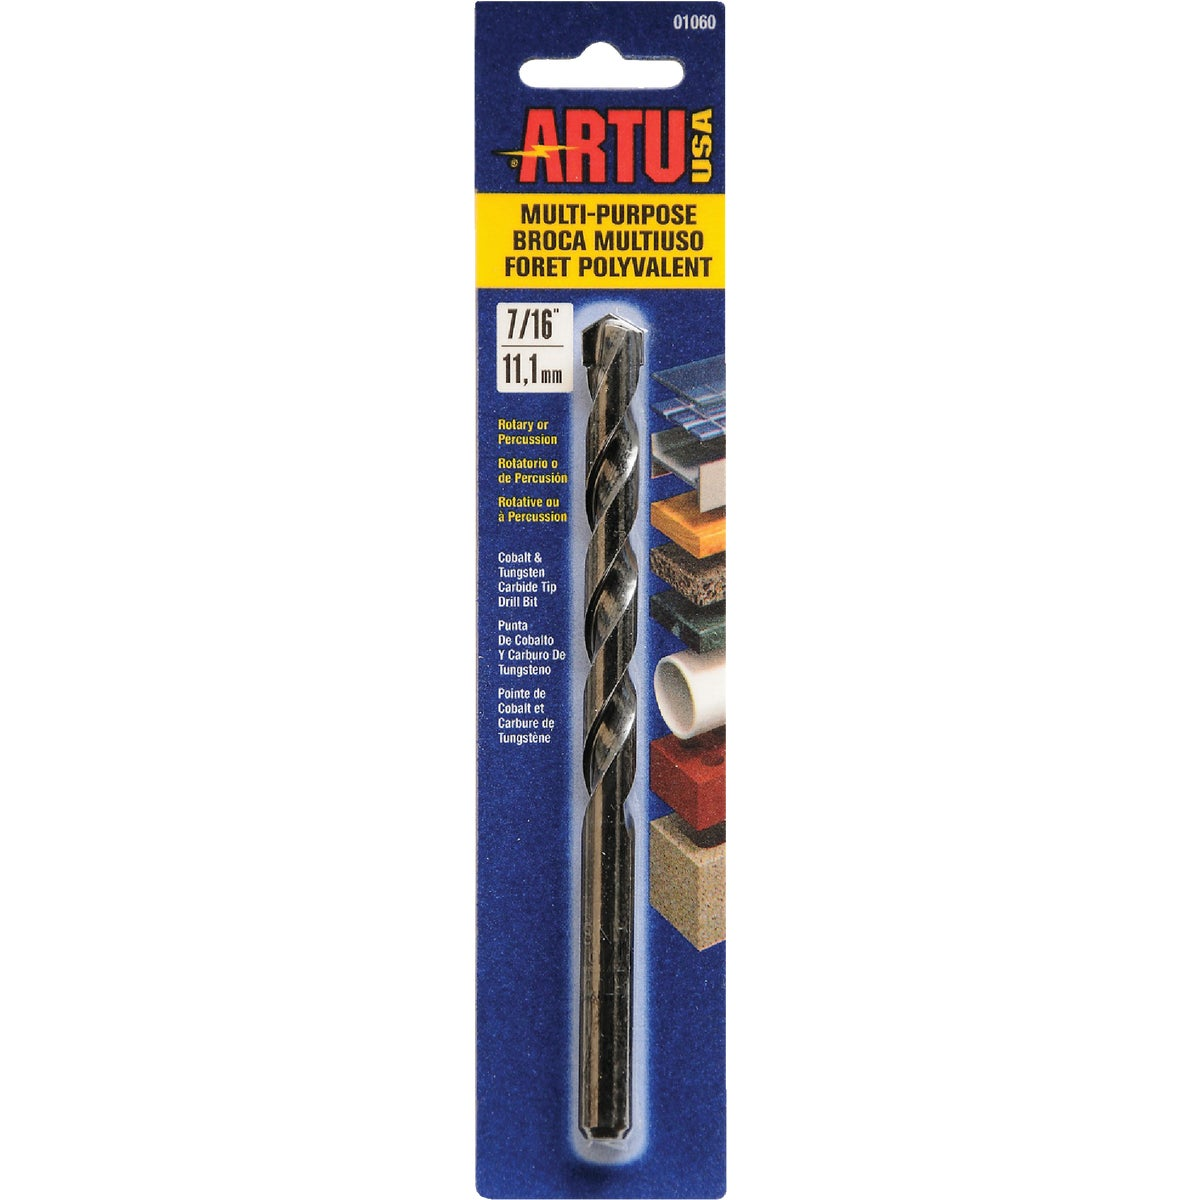 "7/16"" MULTIPURPOSE BIT - 01060 by Artu Usa Inc"